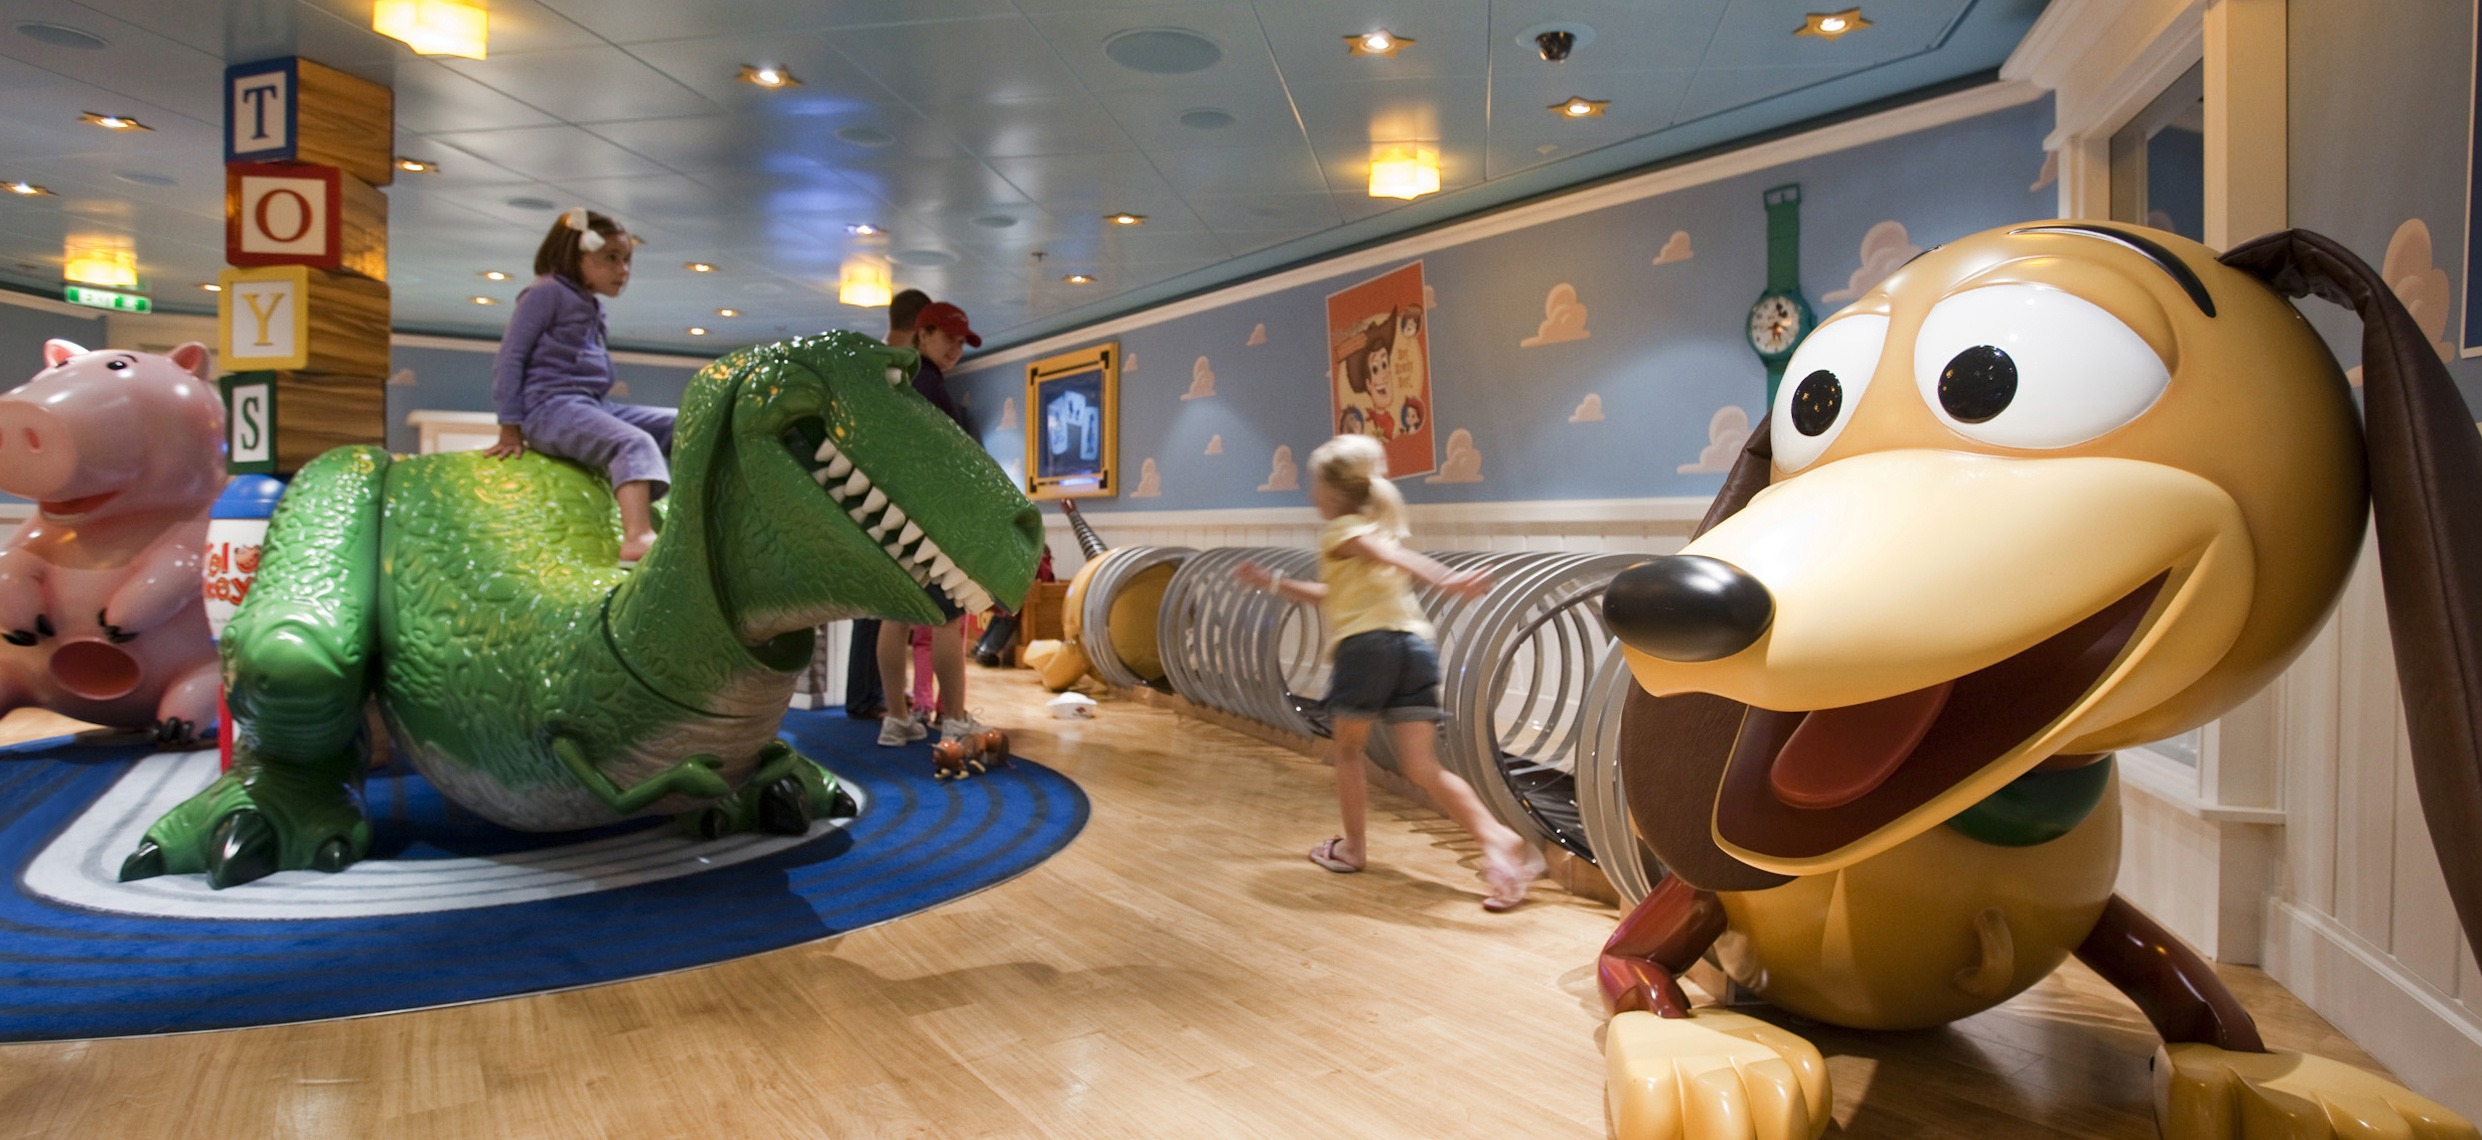 Disney Dream Cruises Good For Family And Adult Fun